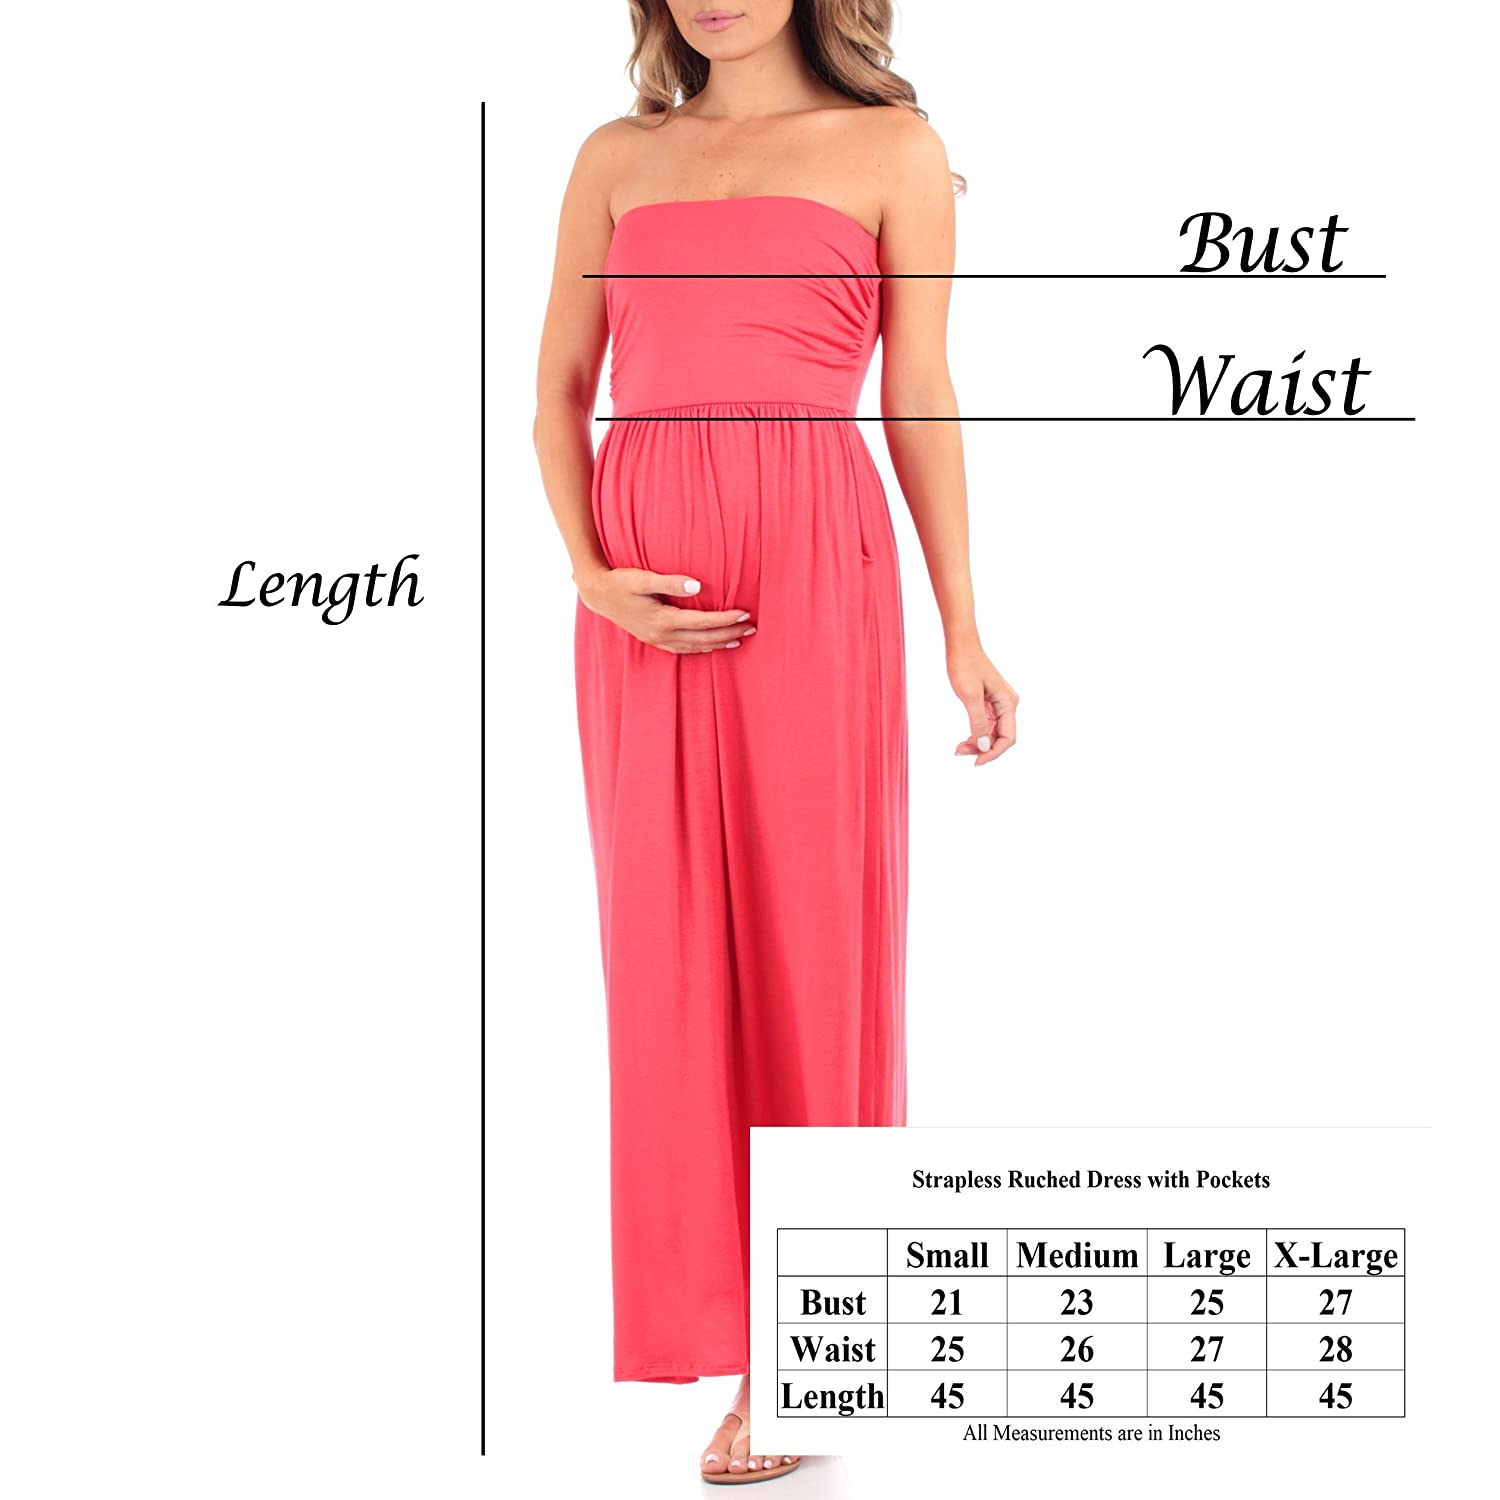 46657d6d00633 Womens Strapless Ruched Maxi Dress With Pockets